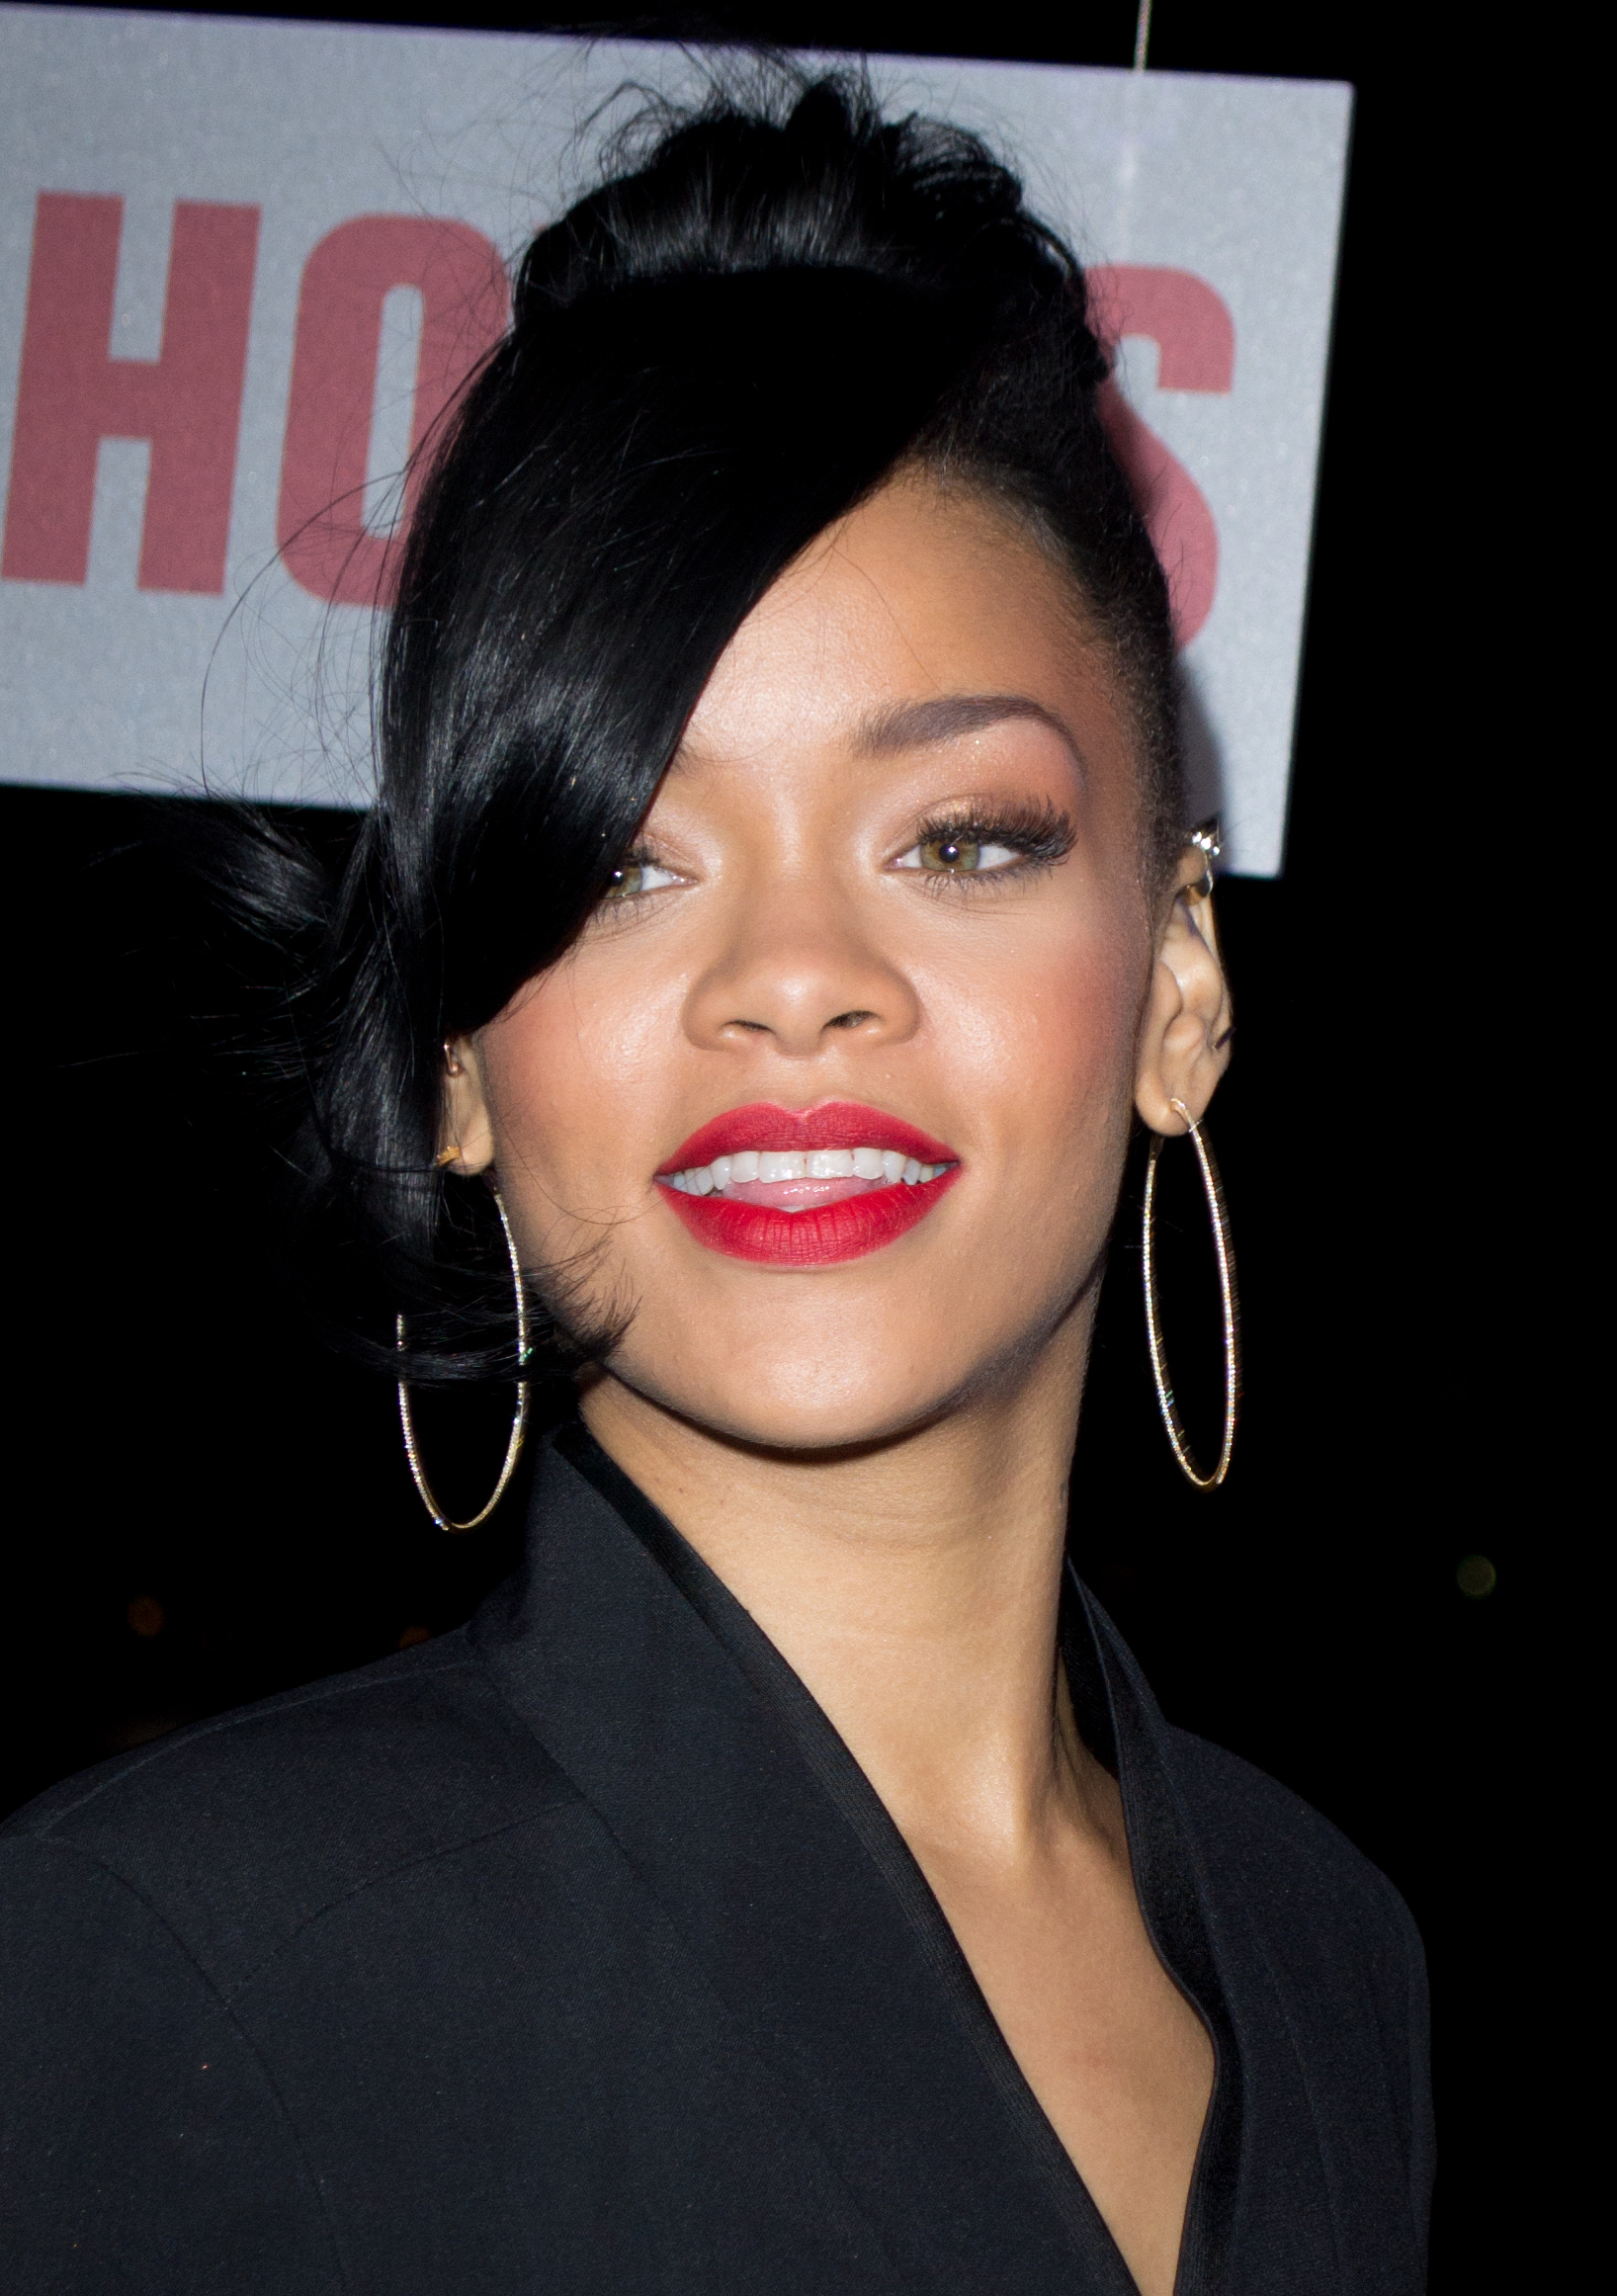 File:Rihanna 5, 2012.jpg - Wikimedia Commons